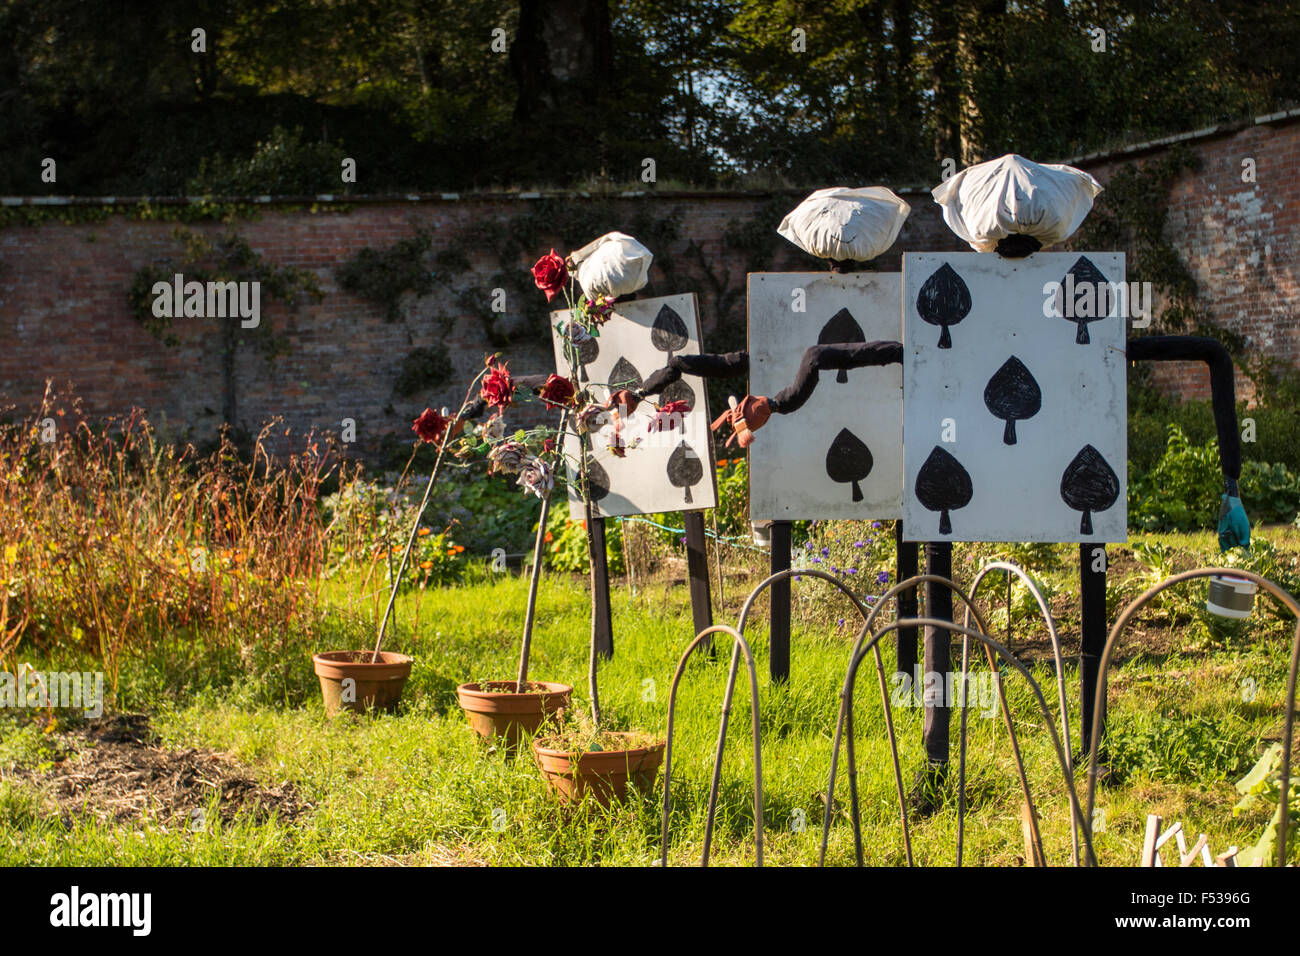 Alice In Wonderland Scarecrow Garden Stock Photo Royalty Free